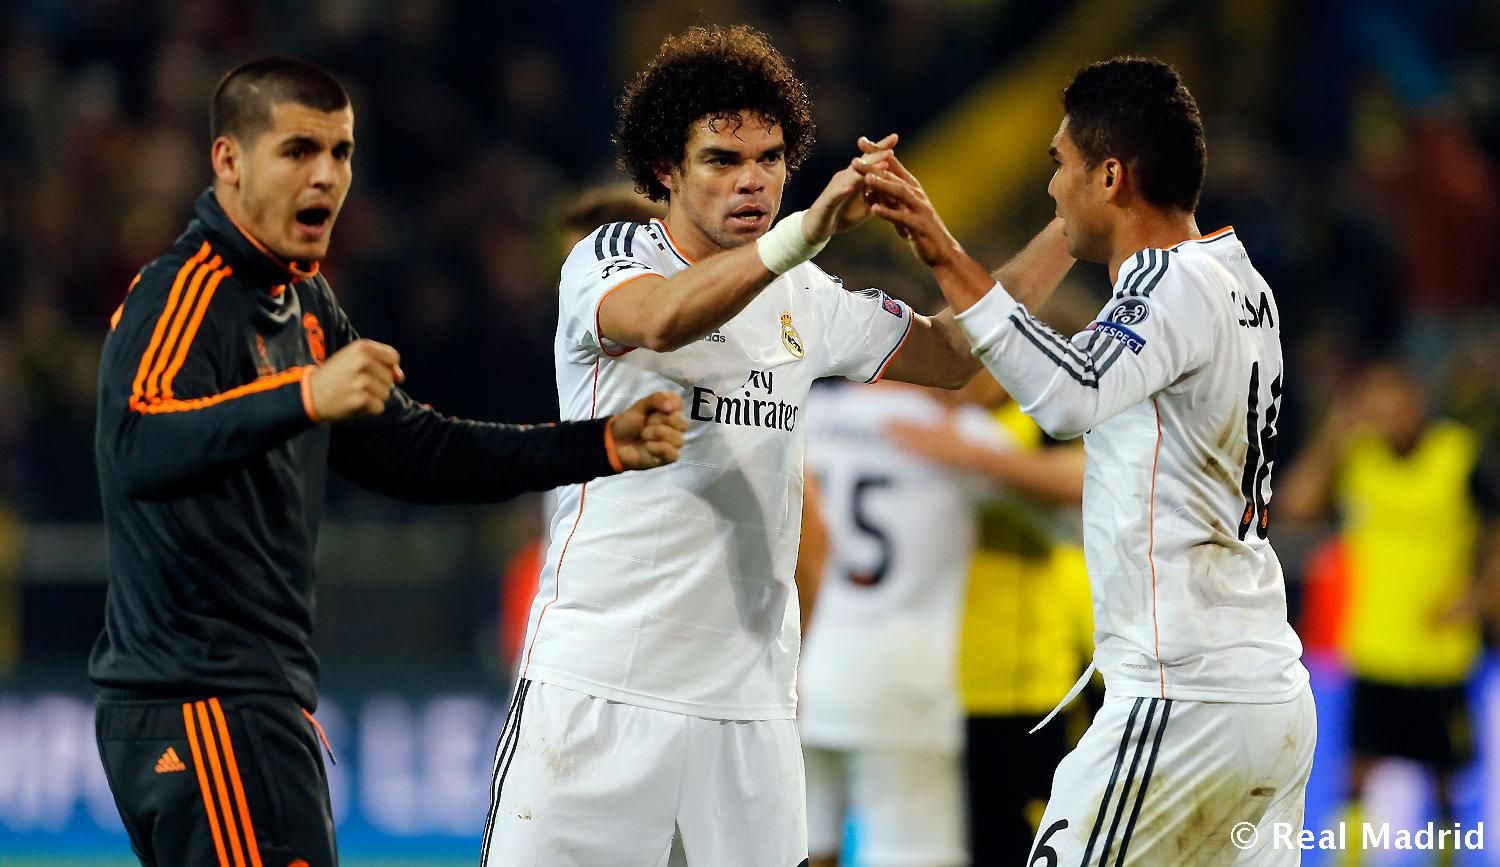 Real Madrid - Borussia Dortmund - Real Madrid - 09-04-2014